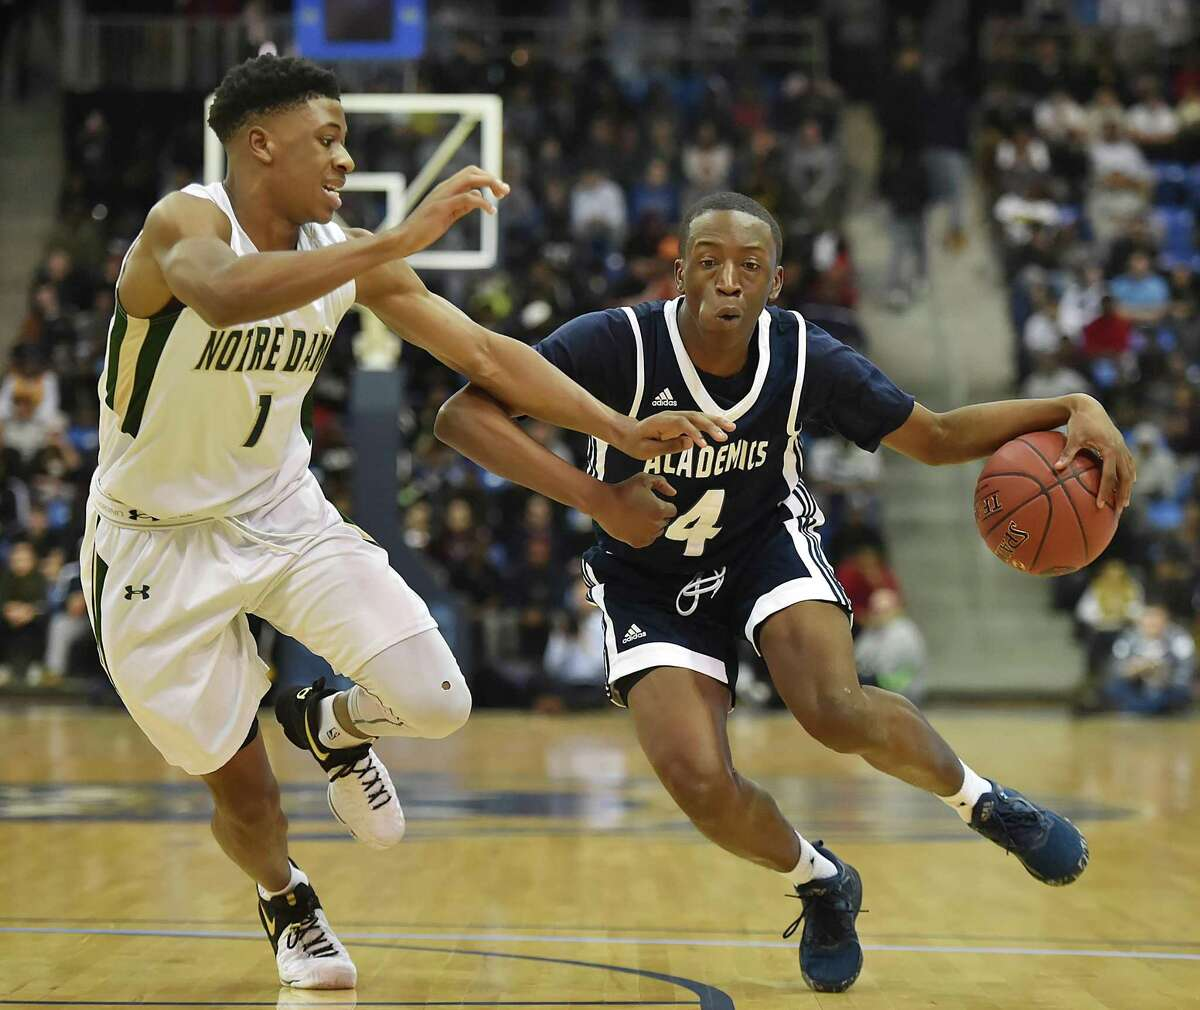 Hillhouse senior Tyler Douglas drives past Notre Dame junior Tim Dawson as the Acadmics oust the Green Knights, 70-62, for the SCC boys basketball championship, March 1, 2017, in front of a sold out crowd of 3,421- standing room only at TD Bank Sports Center at Quinnipiac University.